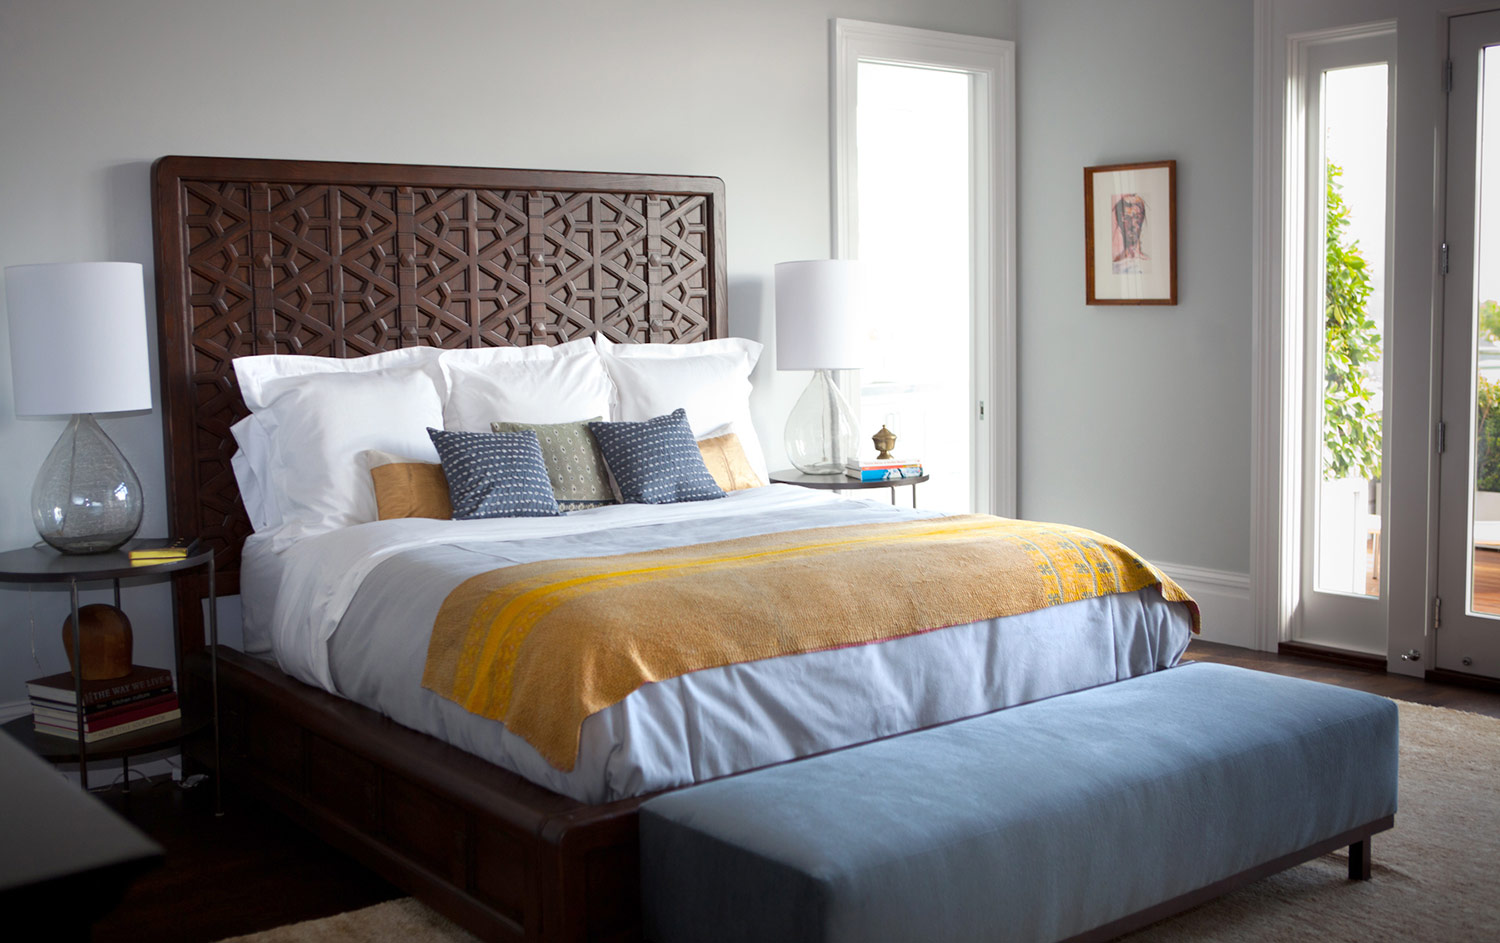 bedroom, bed, headboard, bedside tables, throw pillows, bedside lamps